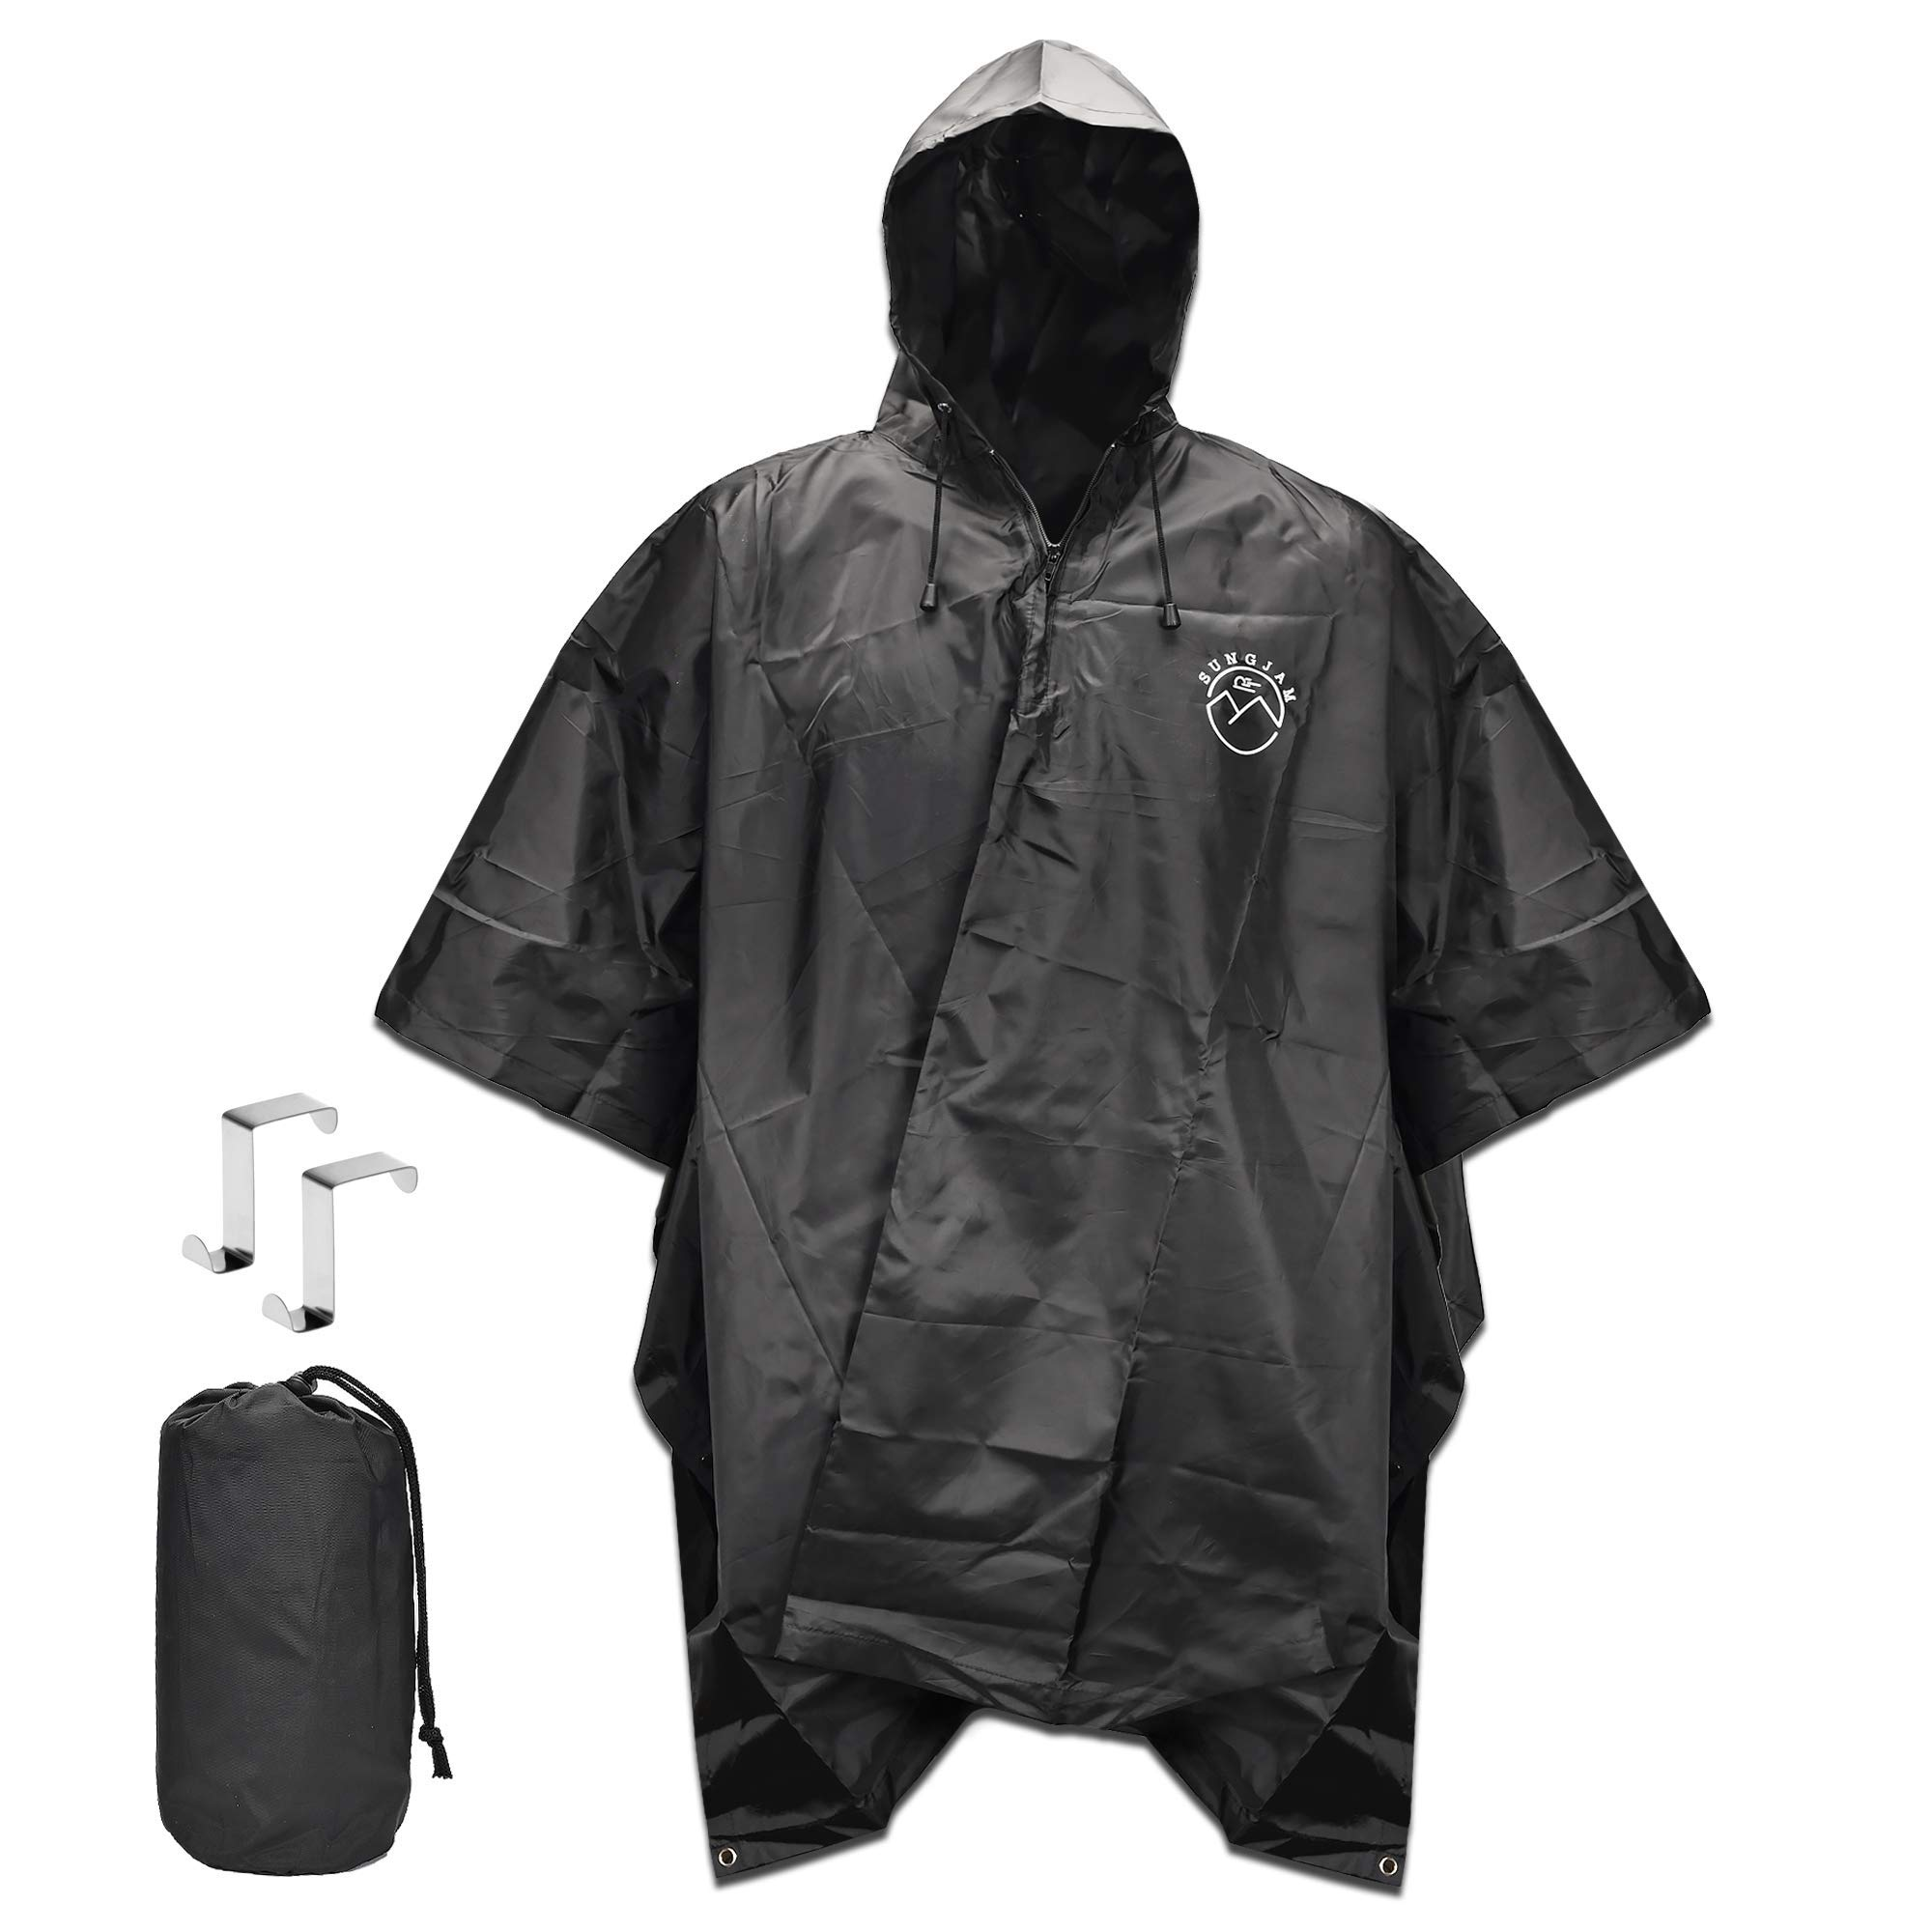 SUNGJAM Rain Poncho with Travel Pouch | Two Over Door Metal Hooks for Drying